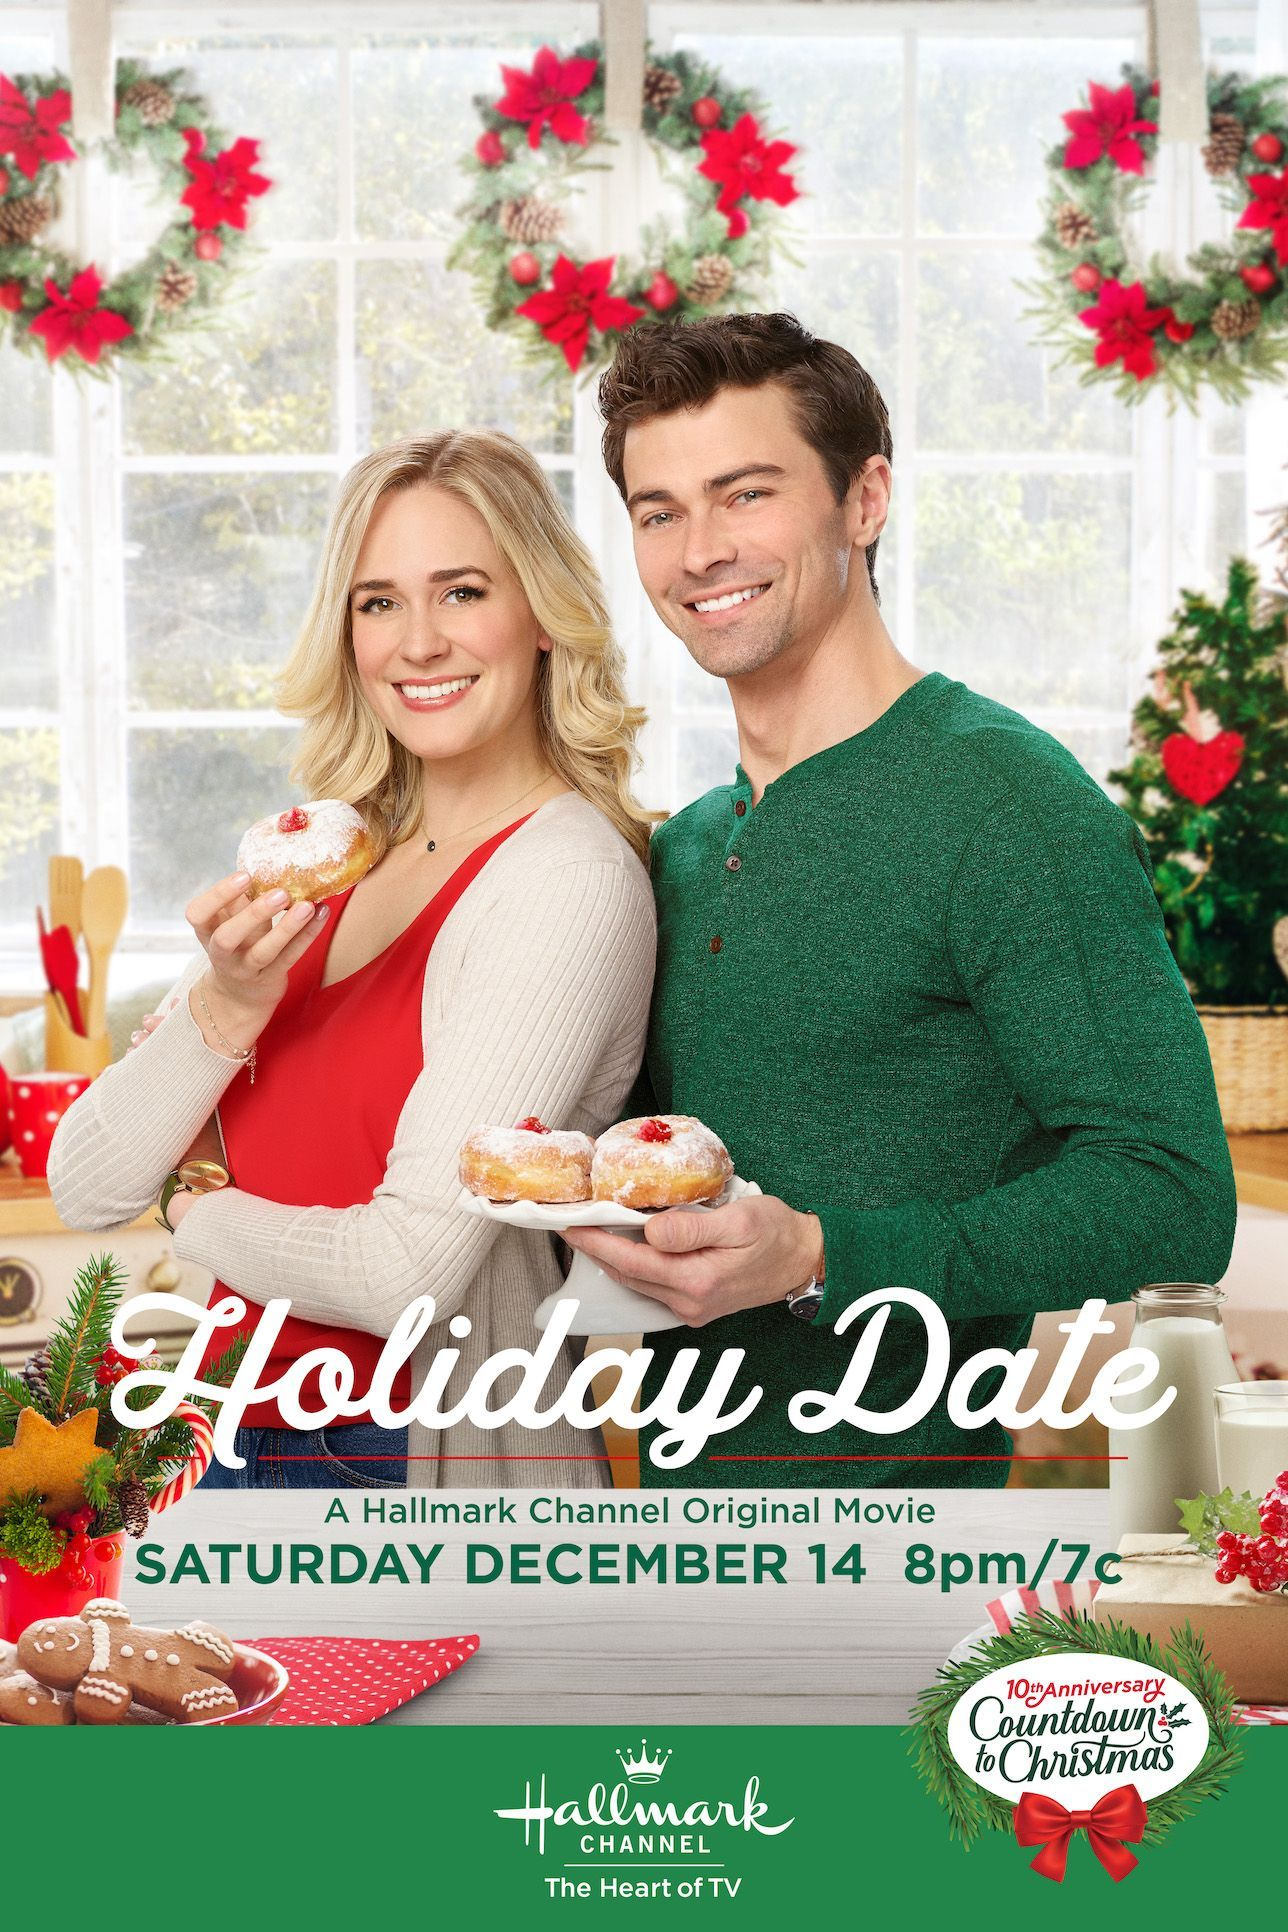 Christmas And Hanukkah Are Honored Together In Holiday Date Starring Brittany Bristow And Matt Hallmark Christmas Movies Christmas Movies On Tv Holiday Dates